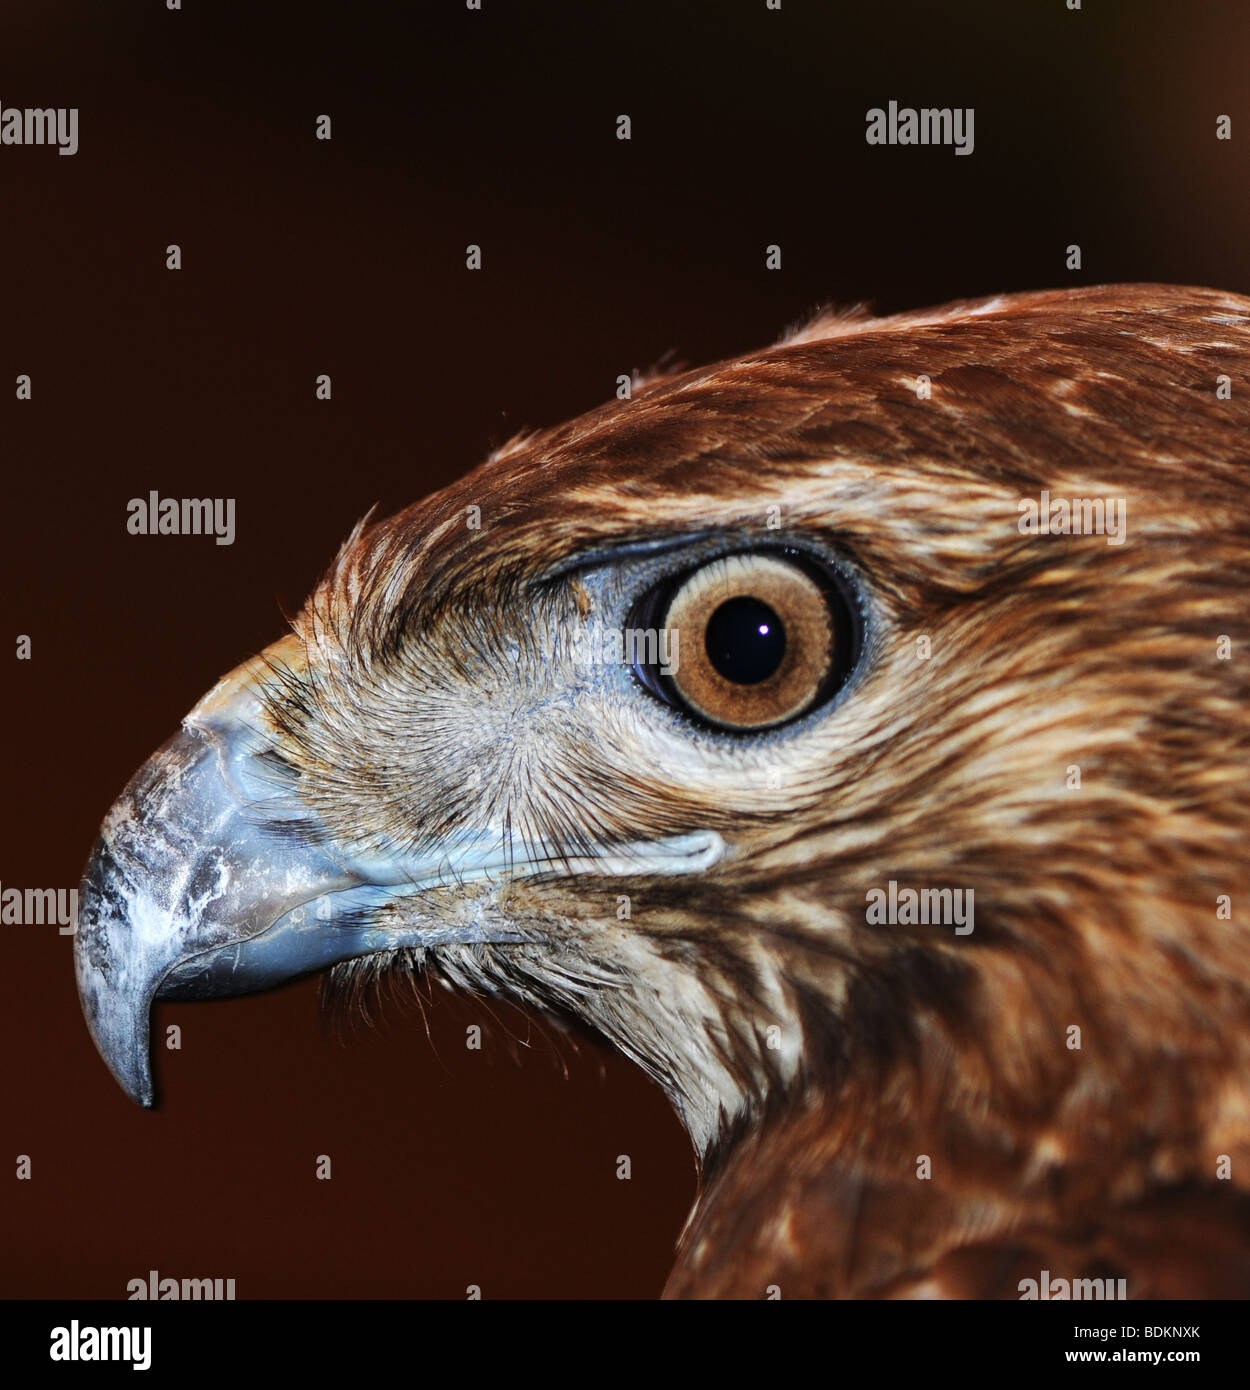 Red-tailed Hawk (Buteo jamaicensis), close-up view of its head - Stock Image